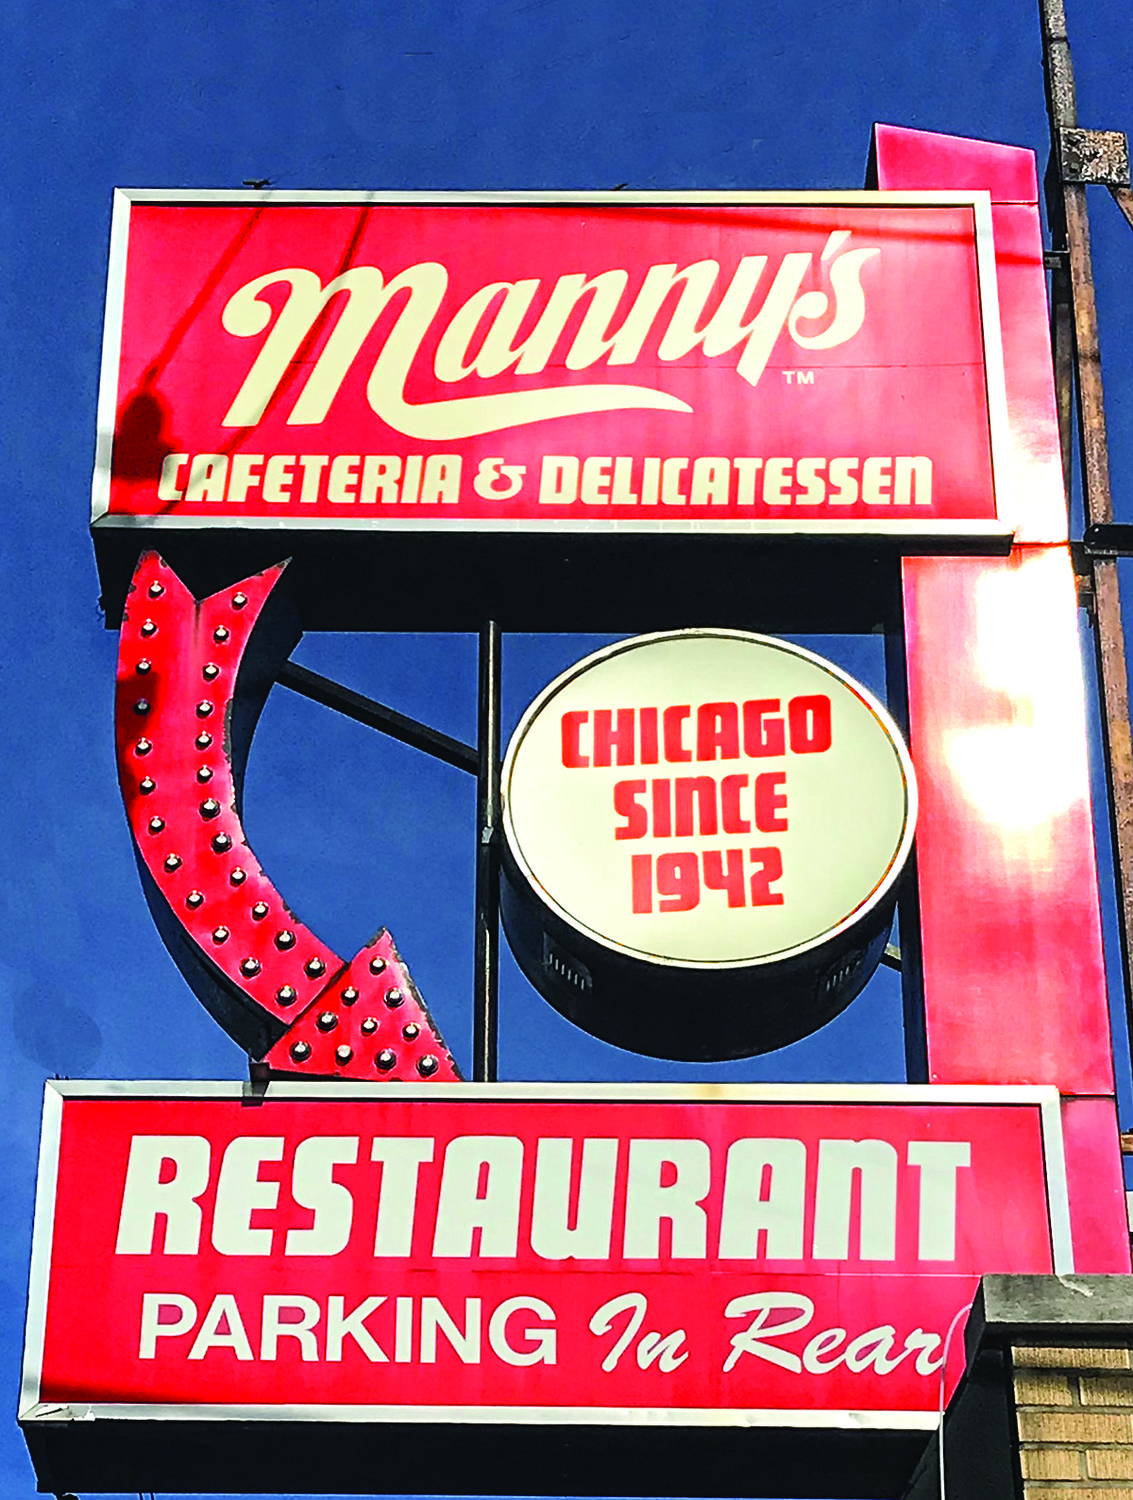 Manny's iconic sign.